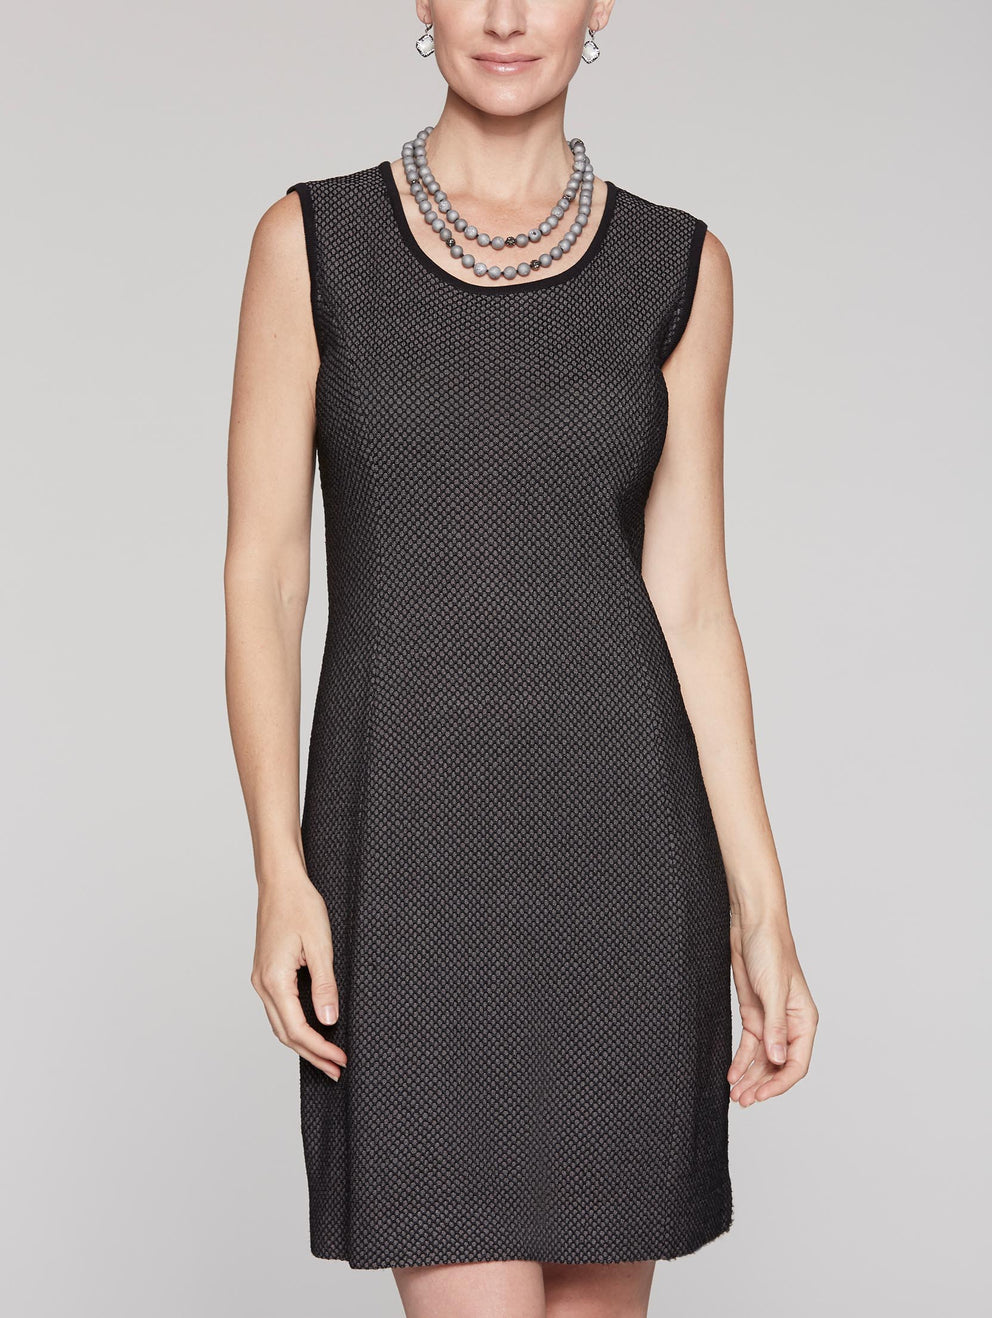 Honeycomb Pattern Dress Color Black/Slate